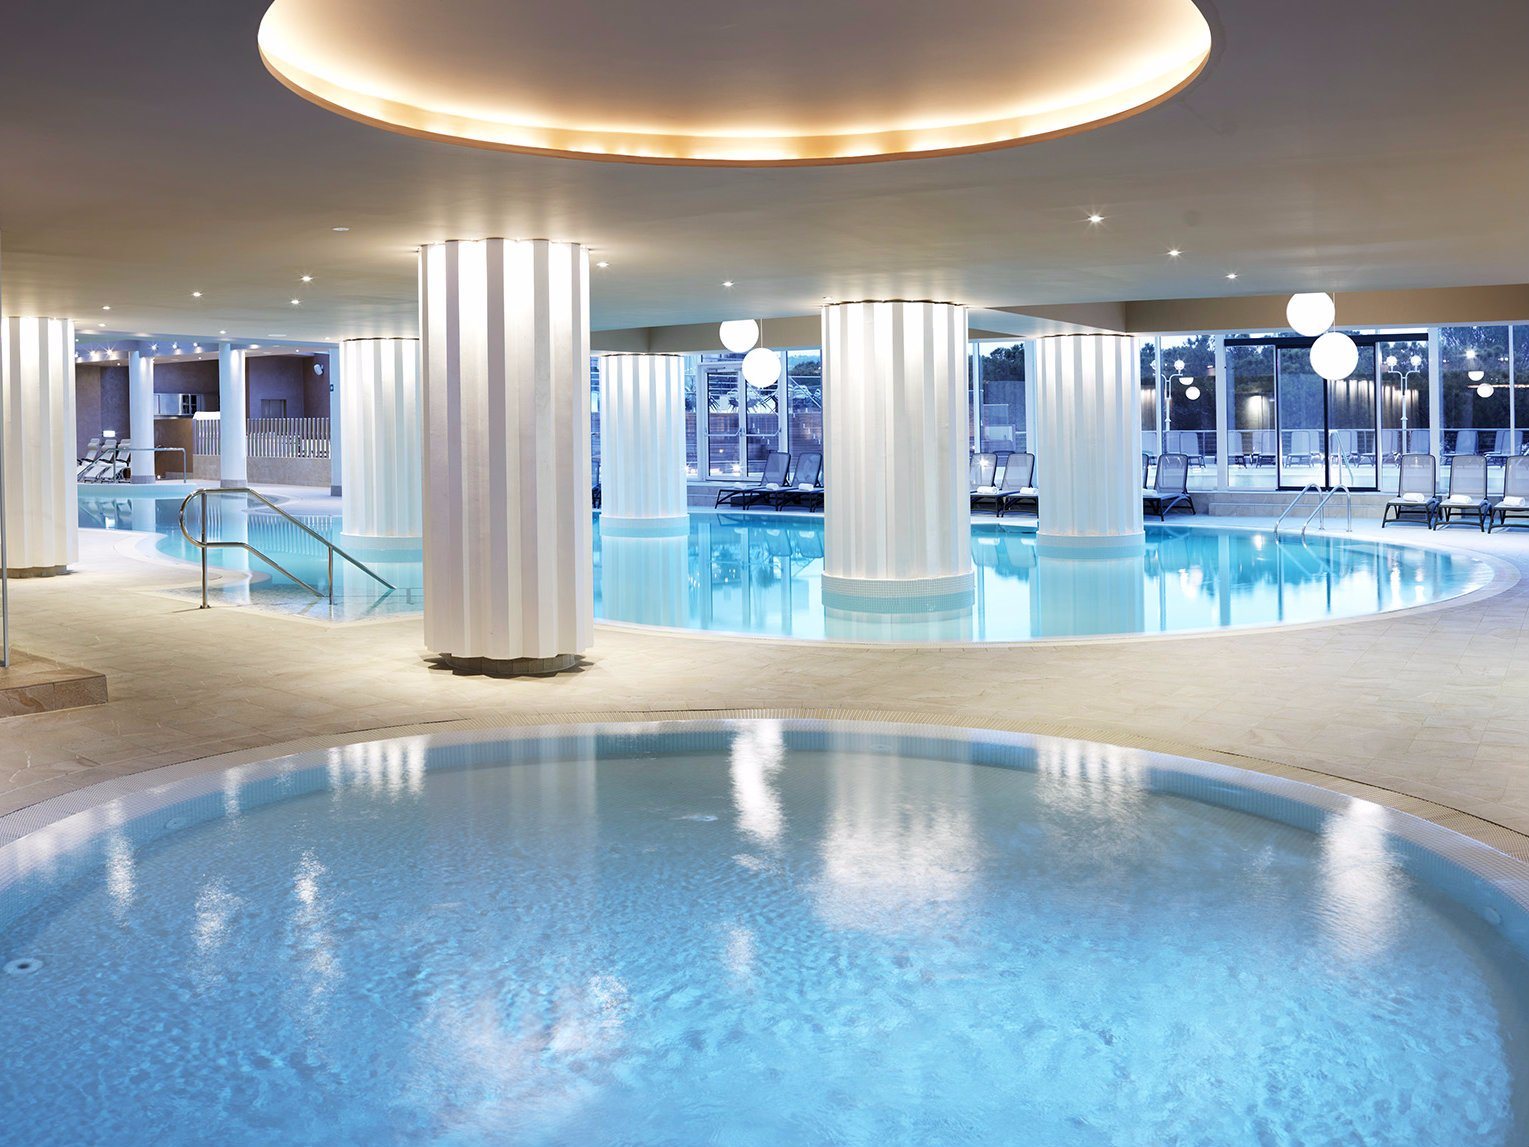 Hotel Slovenija - LifeClass Hotels & Spa